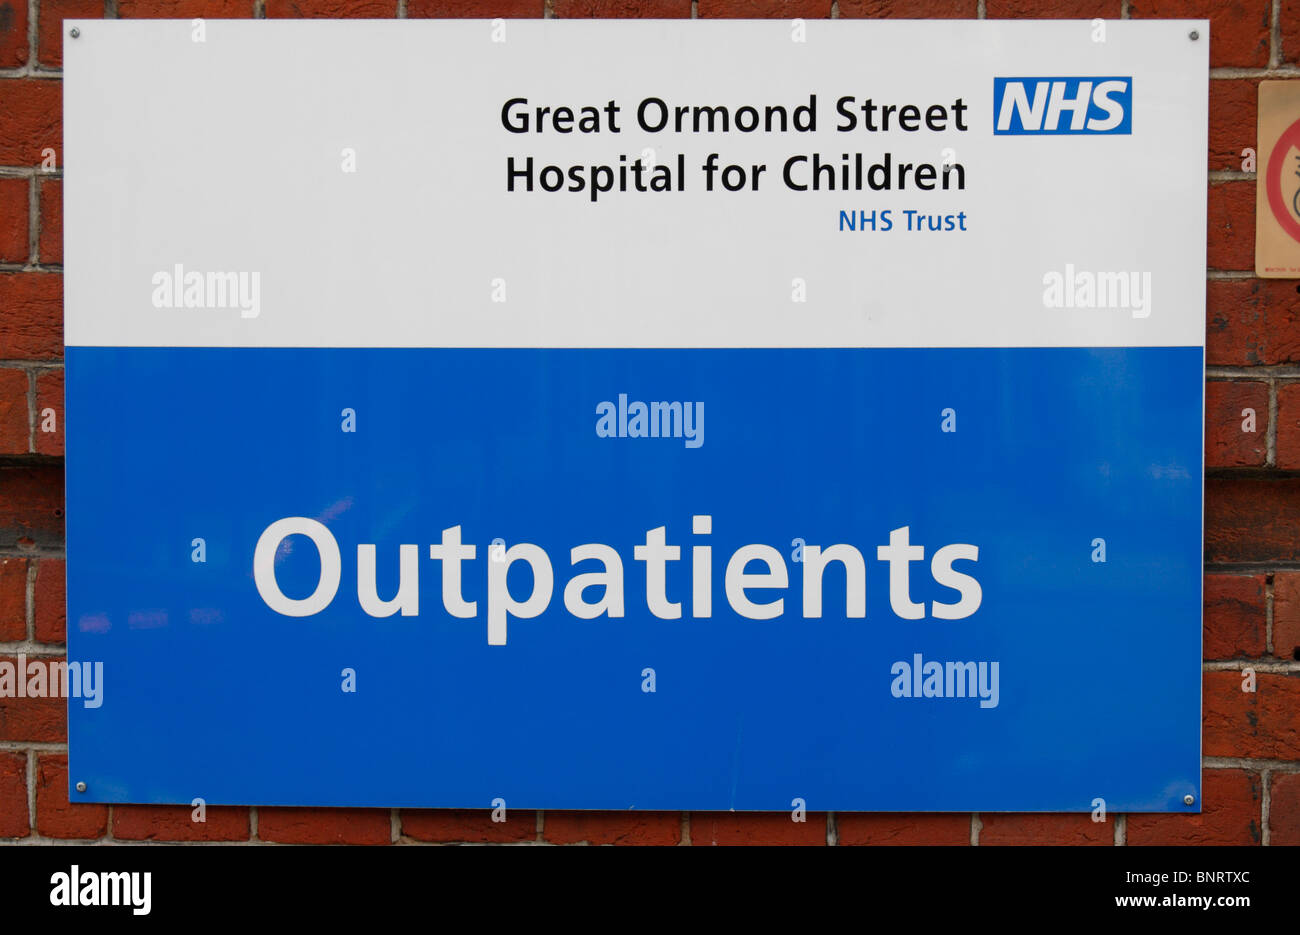 Outpatients sign at the entrance to Great Ormond Street Hospital for Children in London, UK. - Stock Image